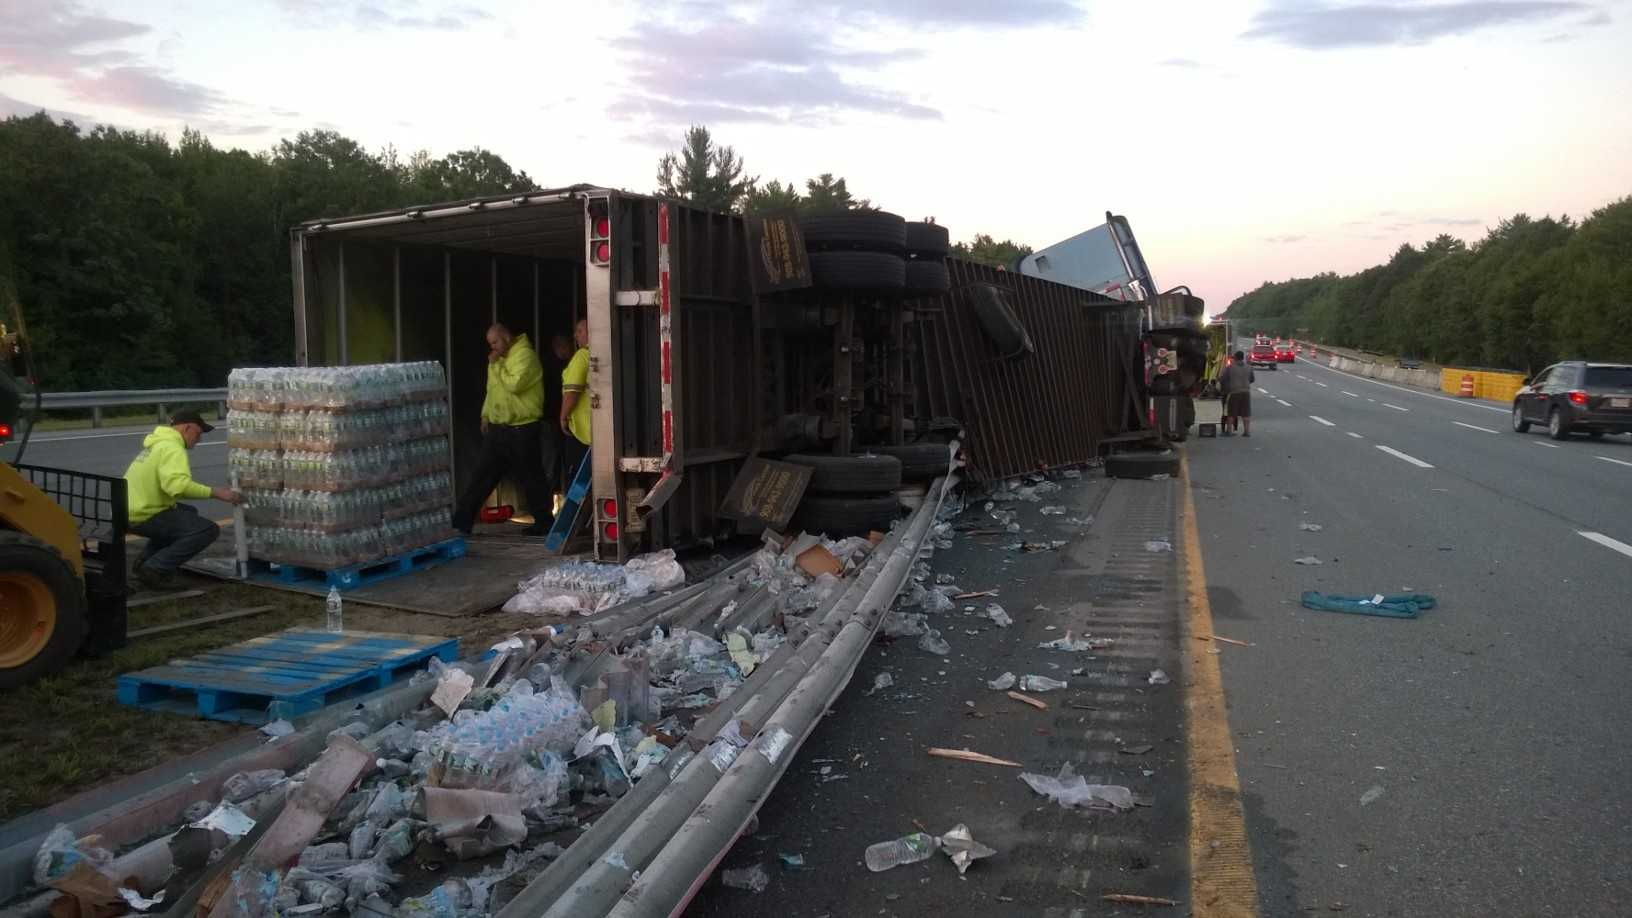 Maine State Police are cleaning up after a tractor trailer loaded with 48,000 pounds of Poland Spring water crashed on Interstate 95 south in York.